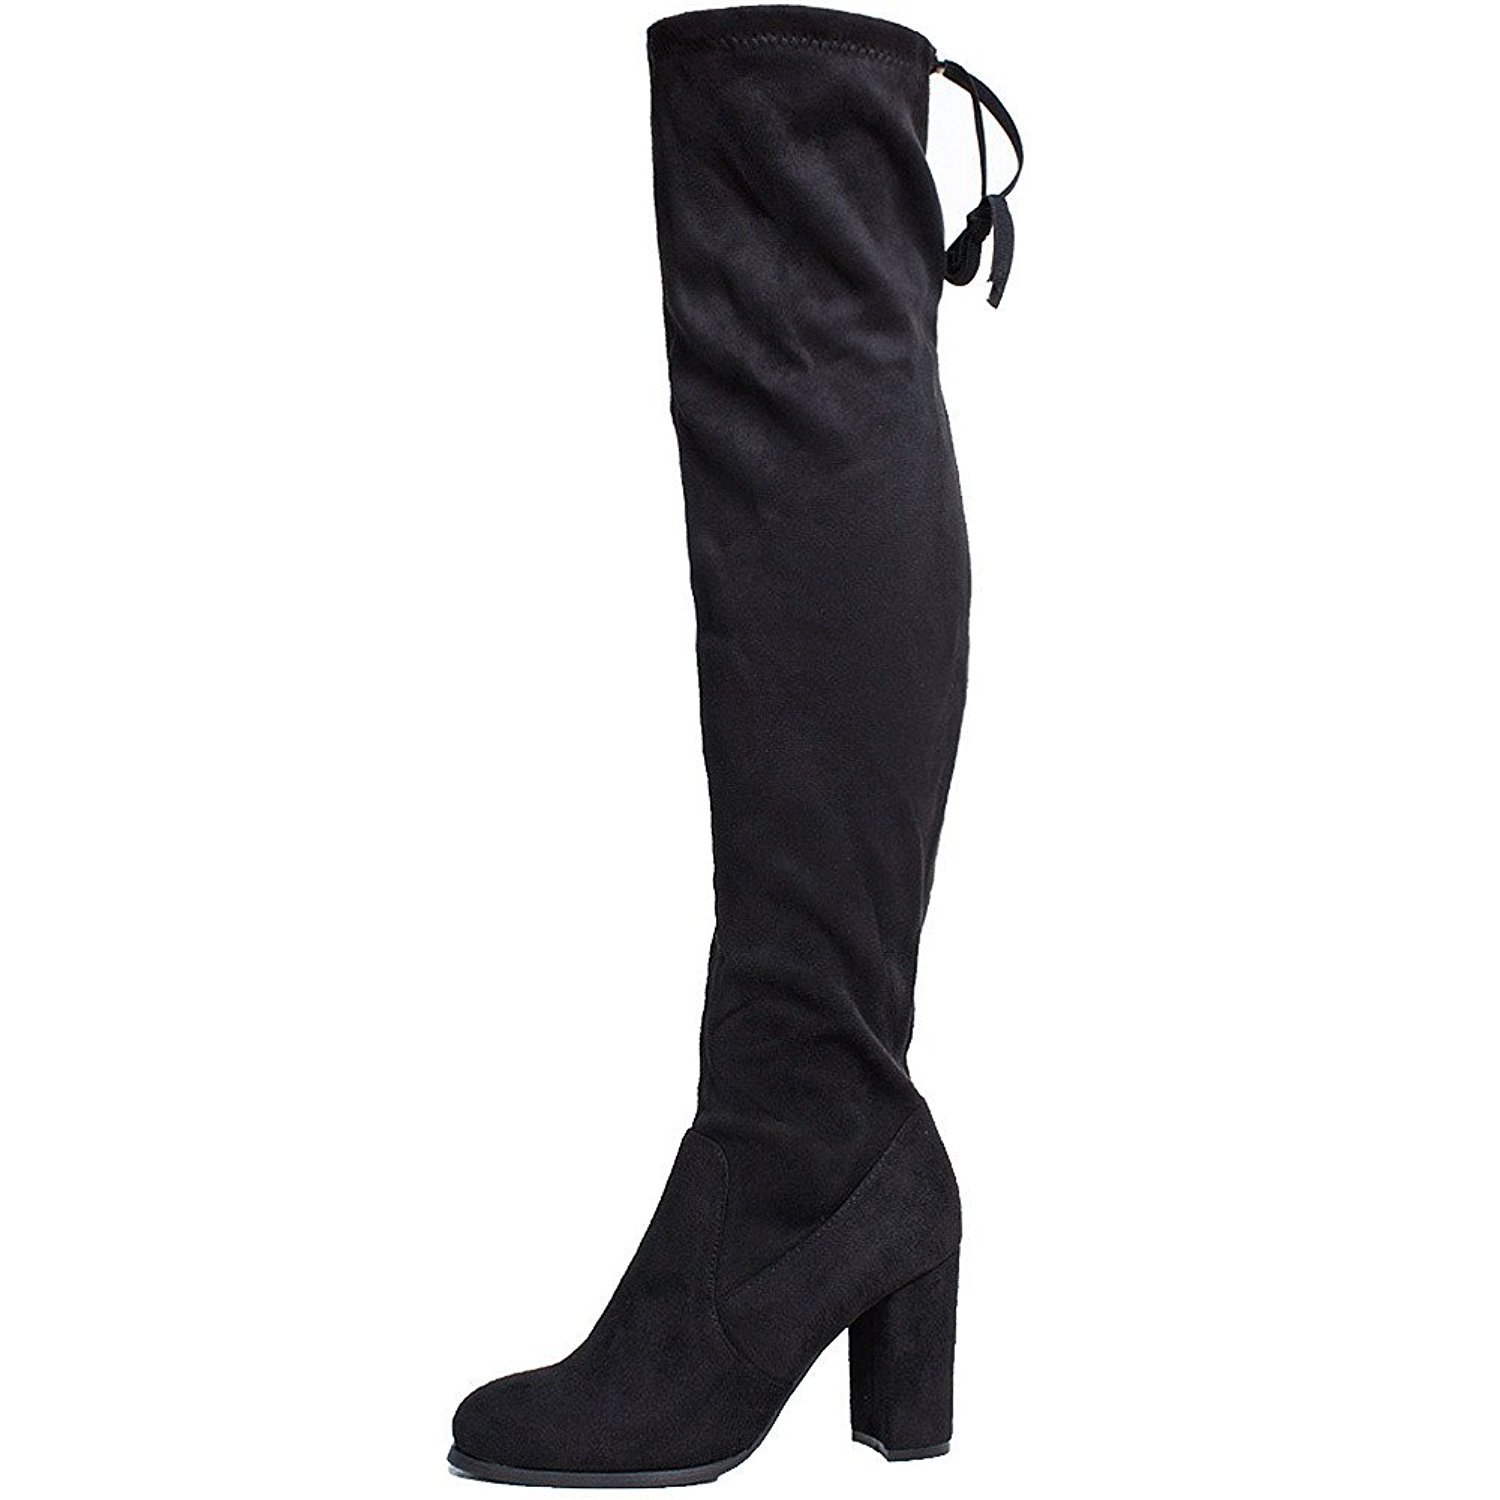 SheSole Women's Over Knee Thigh High Heel Black Boots Size US 9